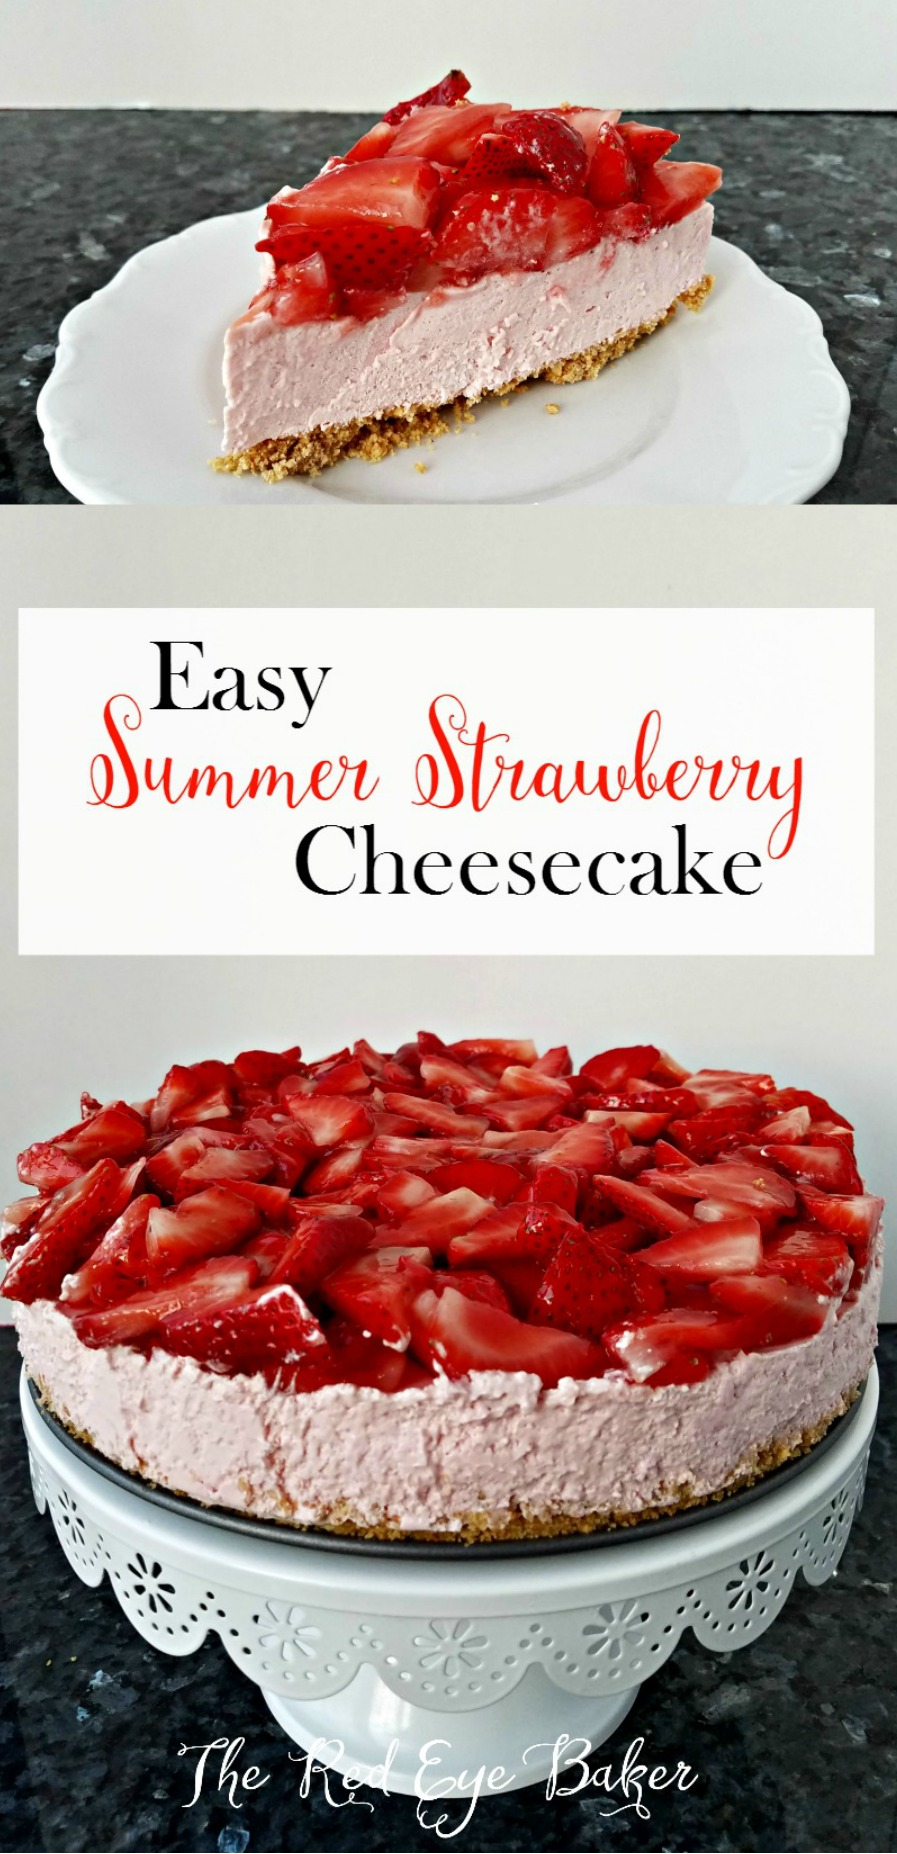 Easy Summer Strawberry Cheesecake | Beat the summer heat with this no bake and simple, light and tasty, summery strawberry dessert!